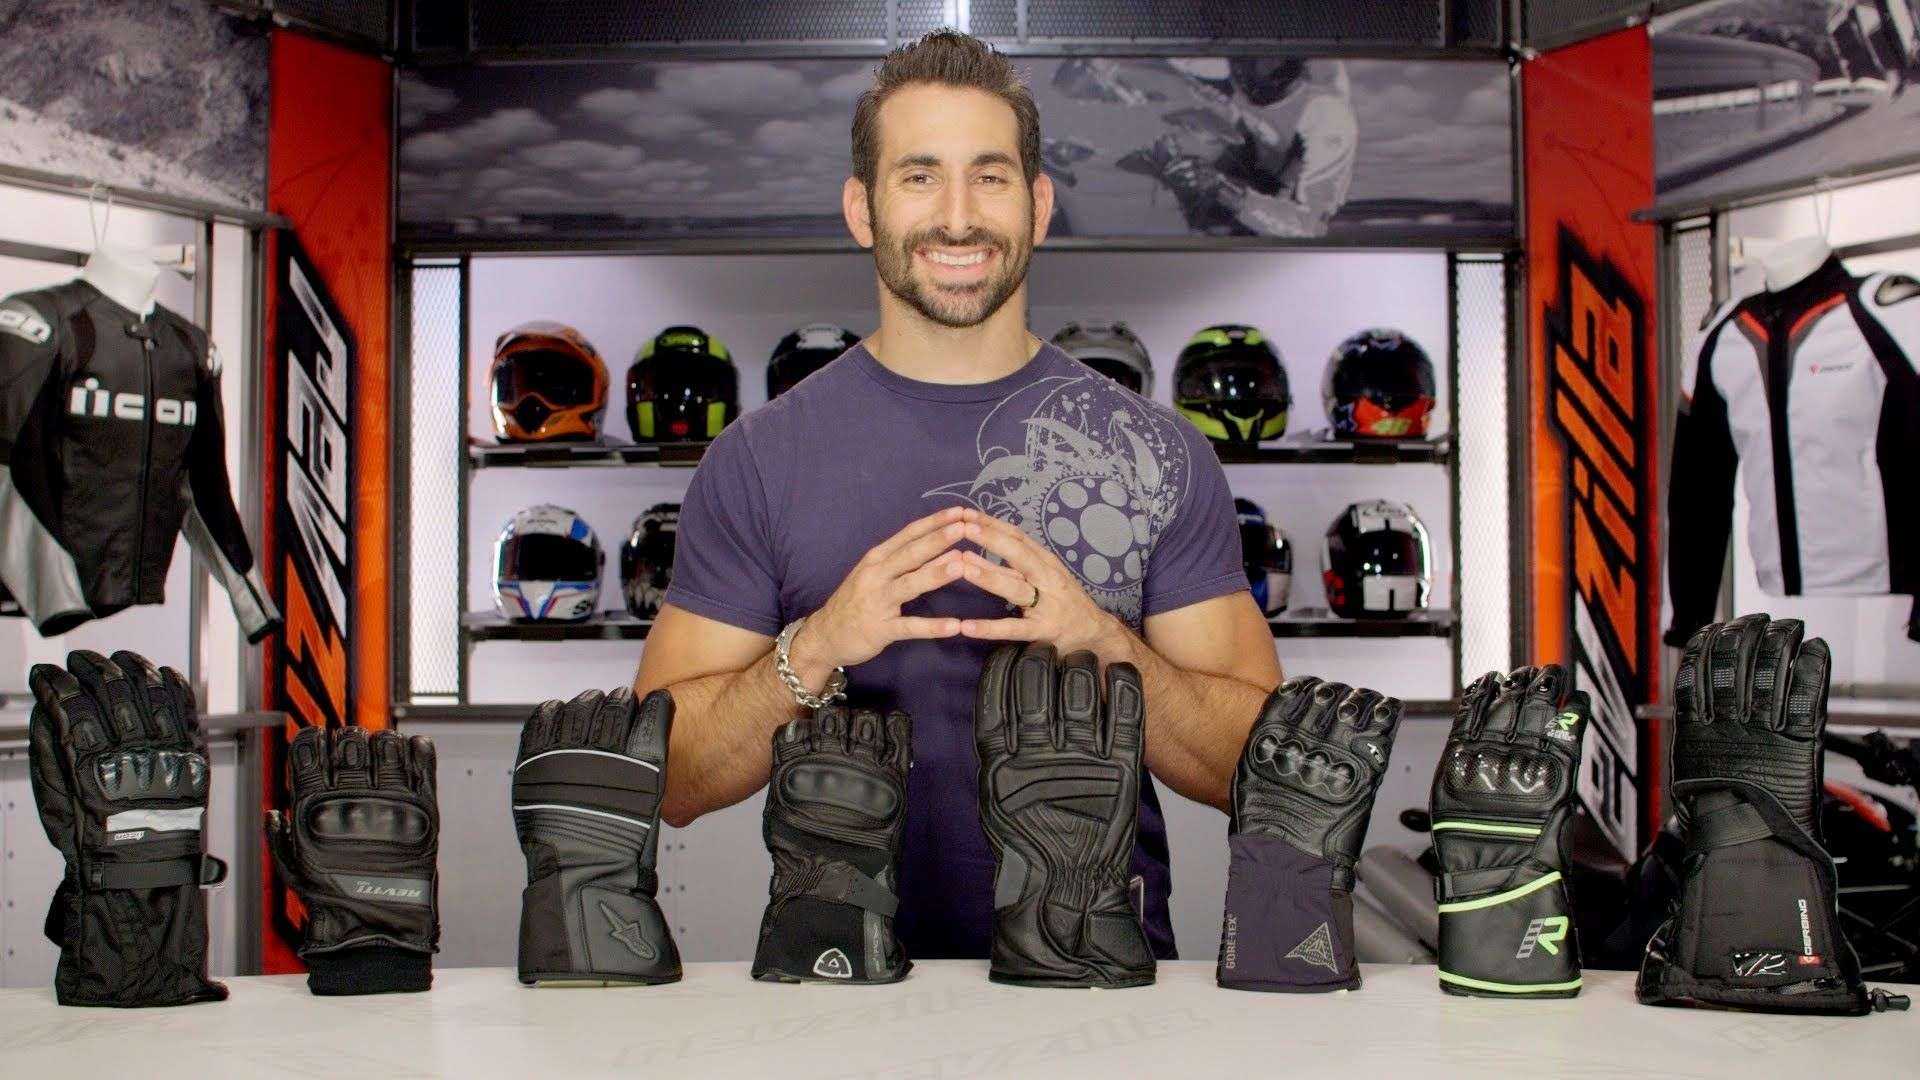 Motorcycle gloves guide - Fall 2014 Waterproof Motorcycle Gloves Buying Guide Http Www Revzilla Com